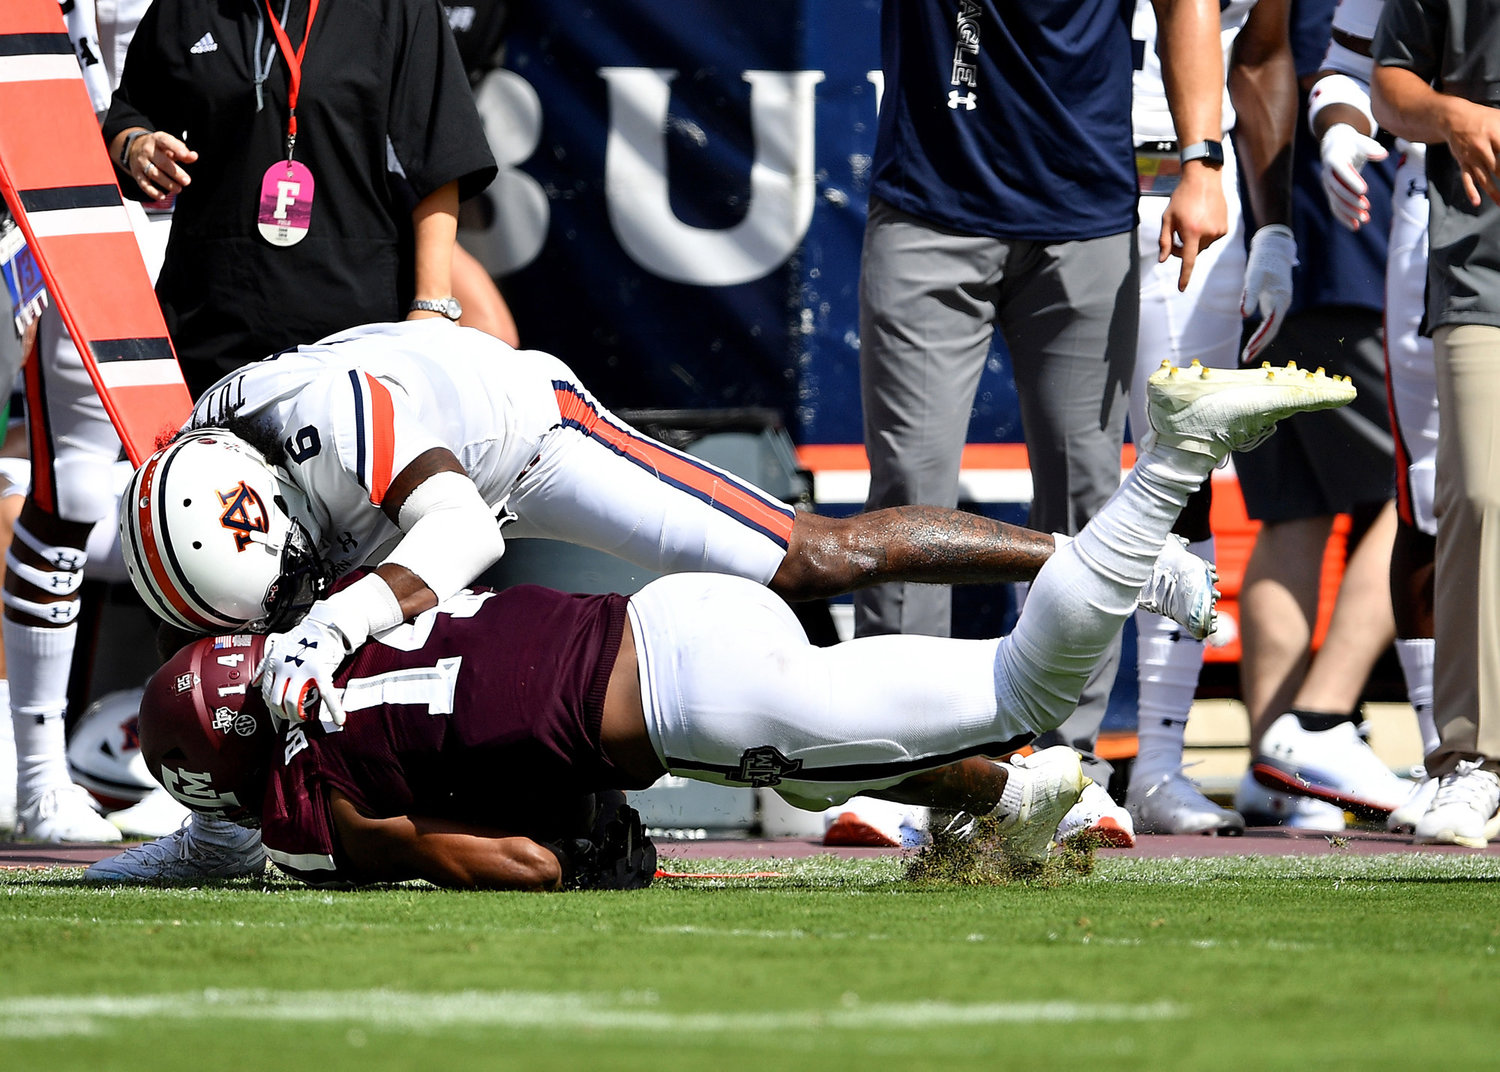 Auburn Tigers defensive back Christian Tutt (6) with a tackle during the first half of an NCAA football game against the Texas A&M Aggies Saturday, Sept. 21, 2019, at Kyle Field in College Station Texas. Auburn wins 28-20.